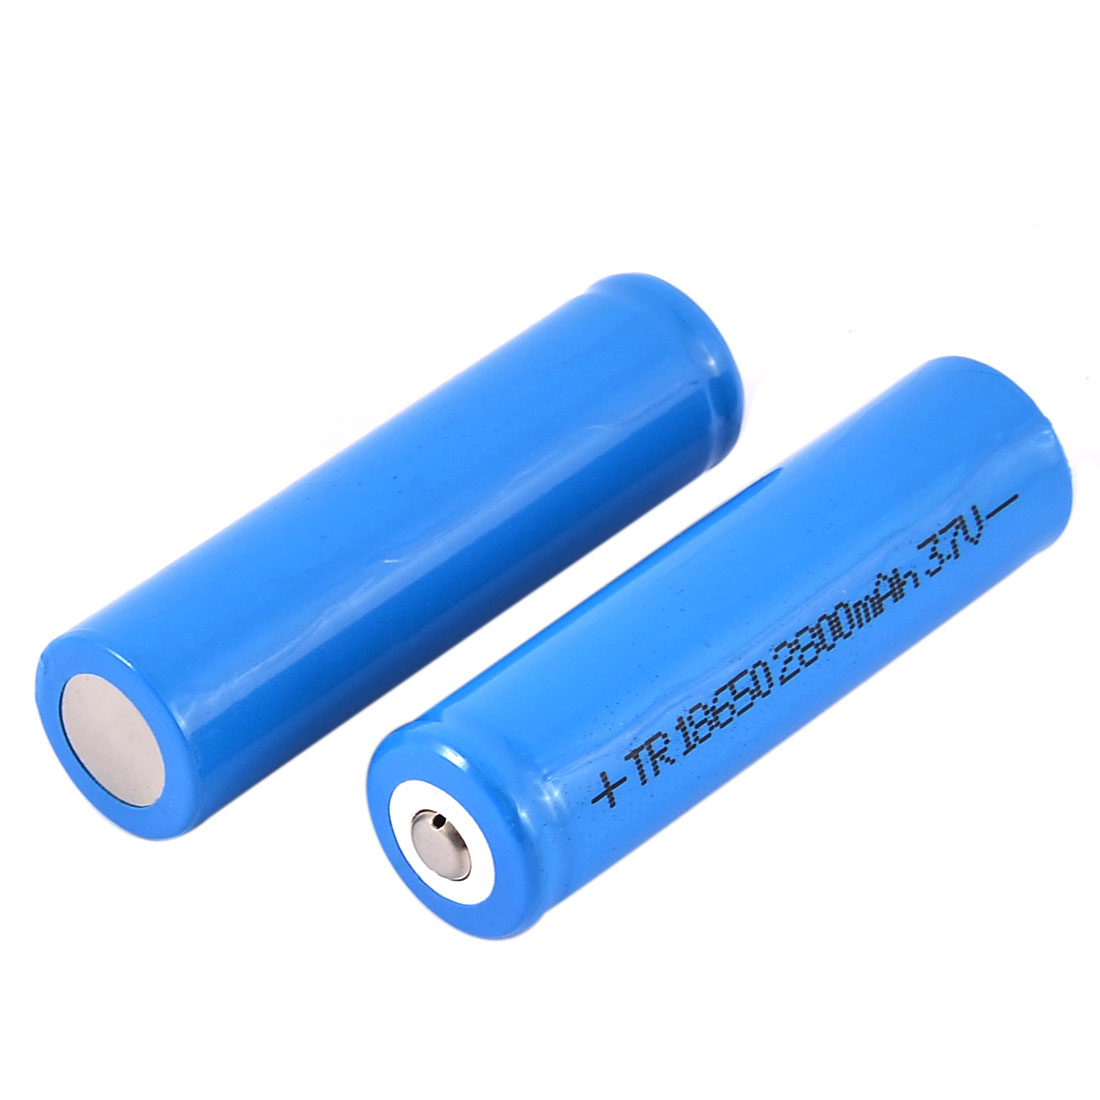 2pcs TR 18650 3.7V 2800mAh Li-ion Rechargeable Battery w Case